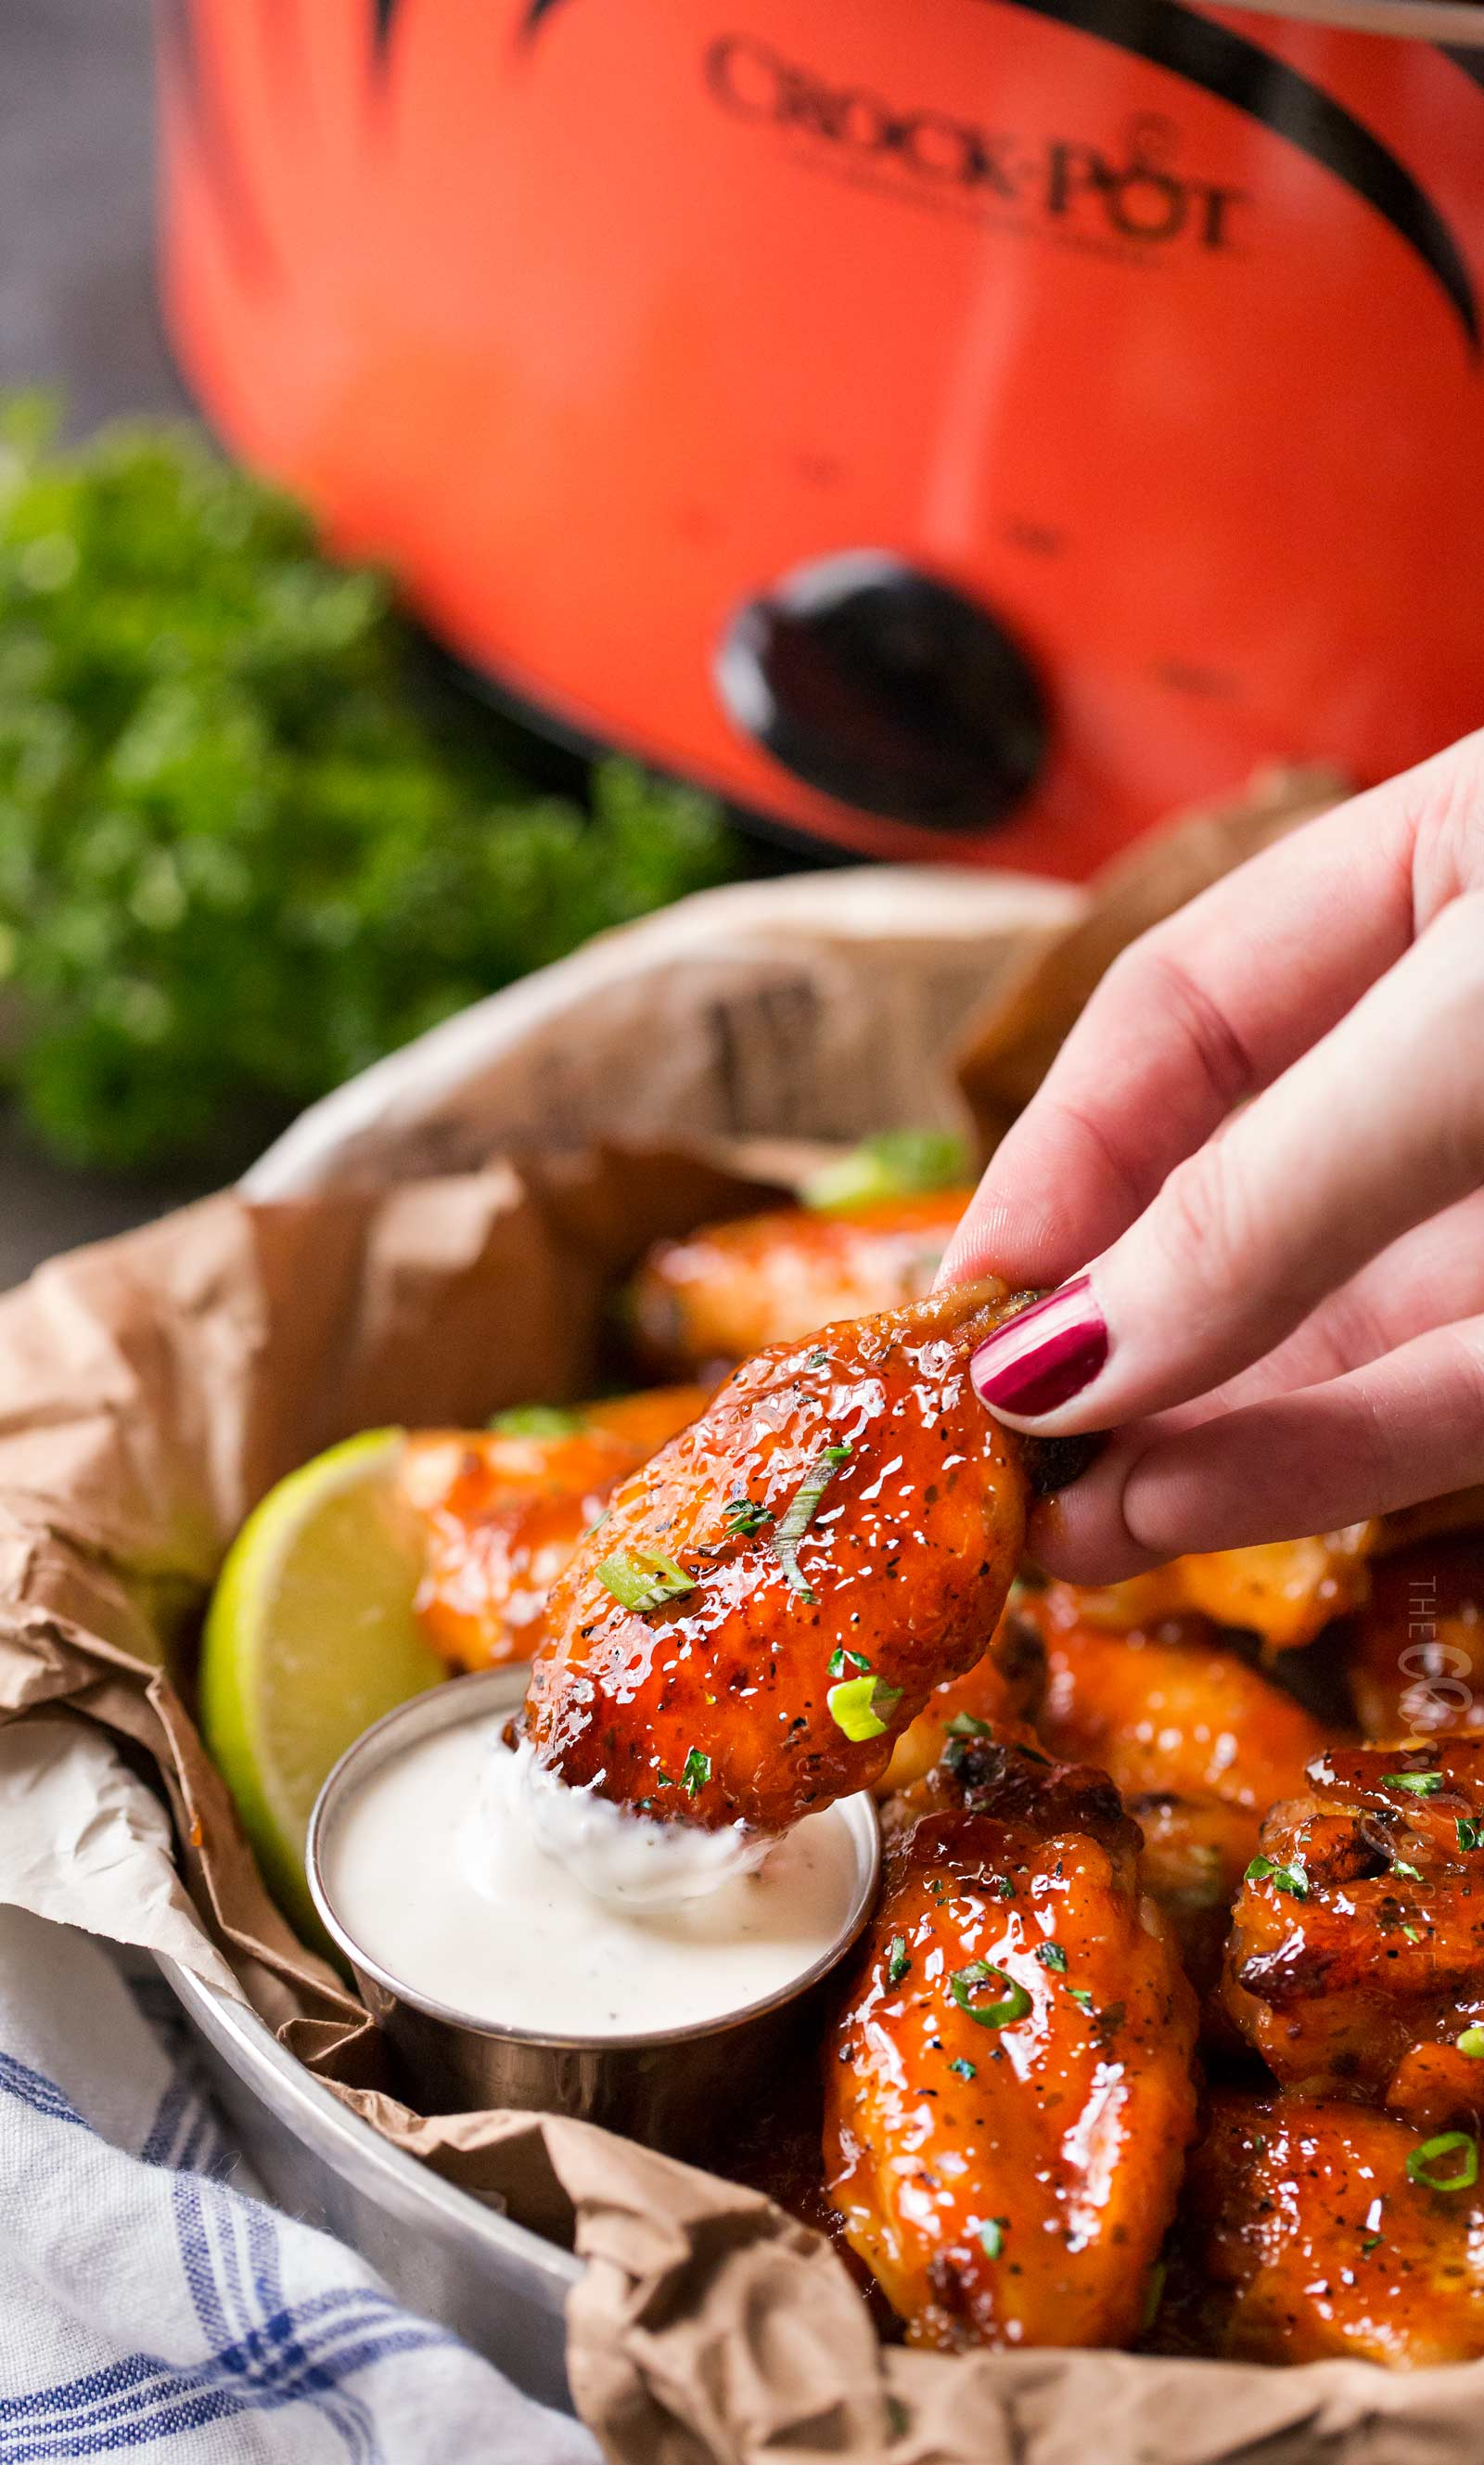 Buffalo hot wings dipped in ranch dressing